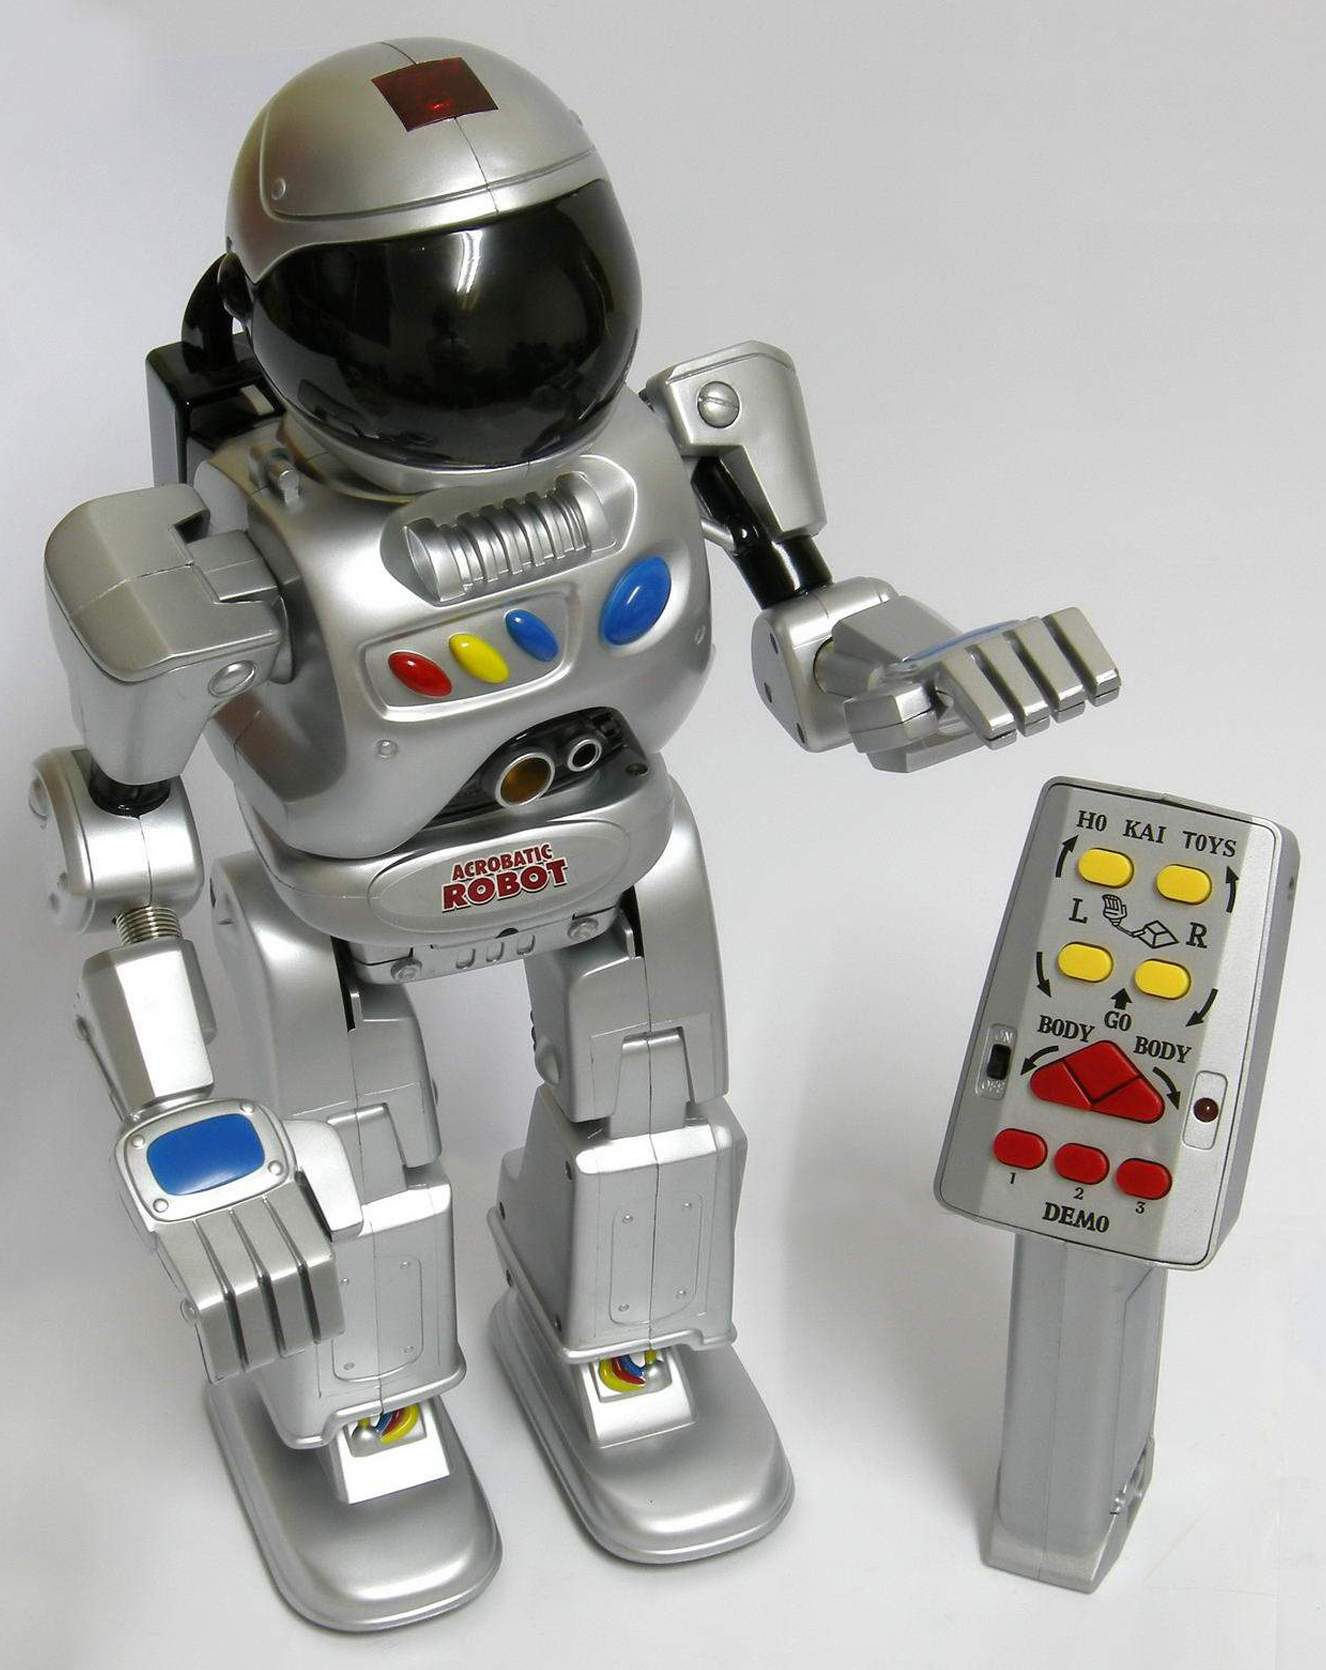 IR Acrobatic Robot HK 588 Ho Kai Toys The Old Robots Web Site